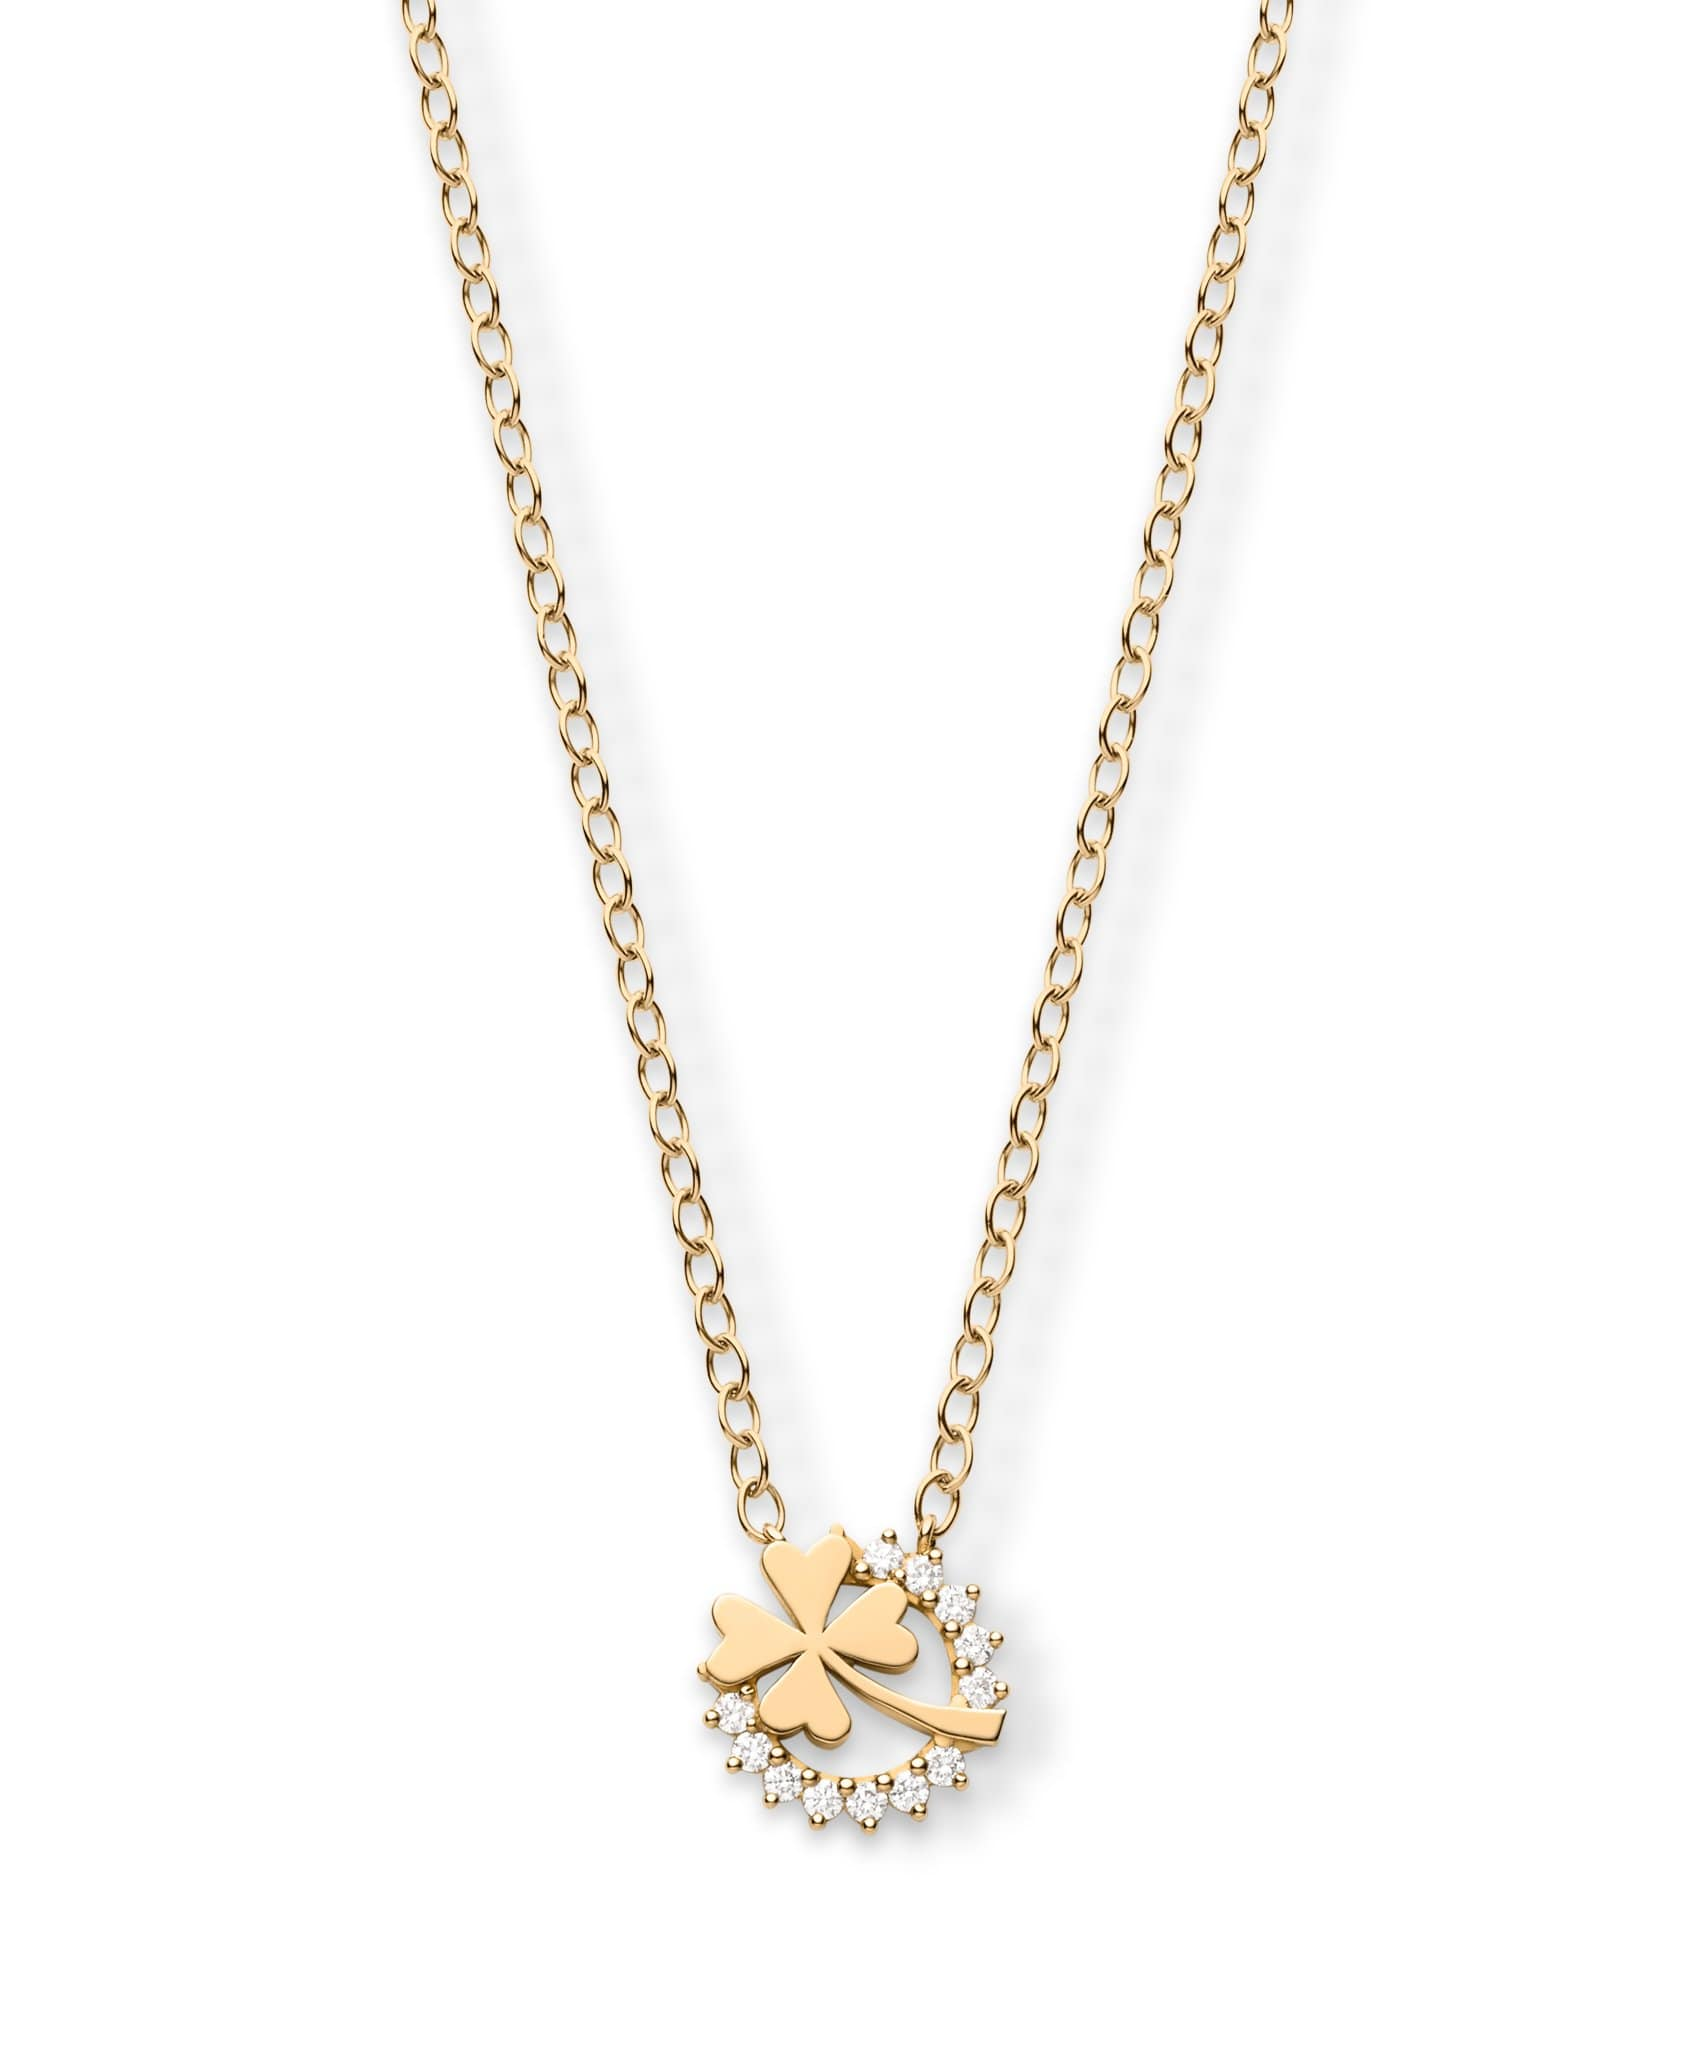 Medium Luck Pendant: Discover Luxury Fine Jewelry | Nouvel Heritage